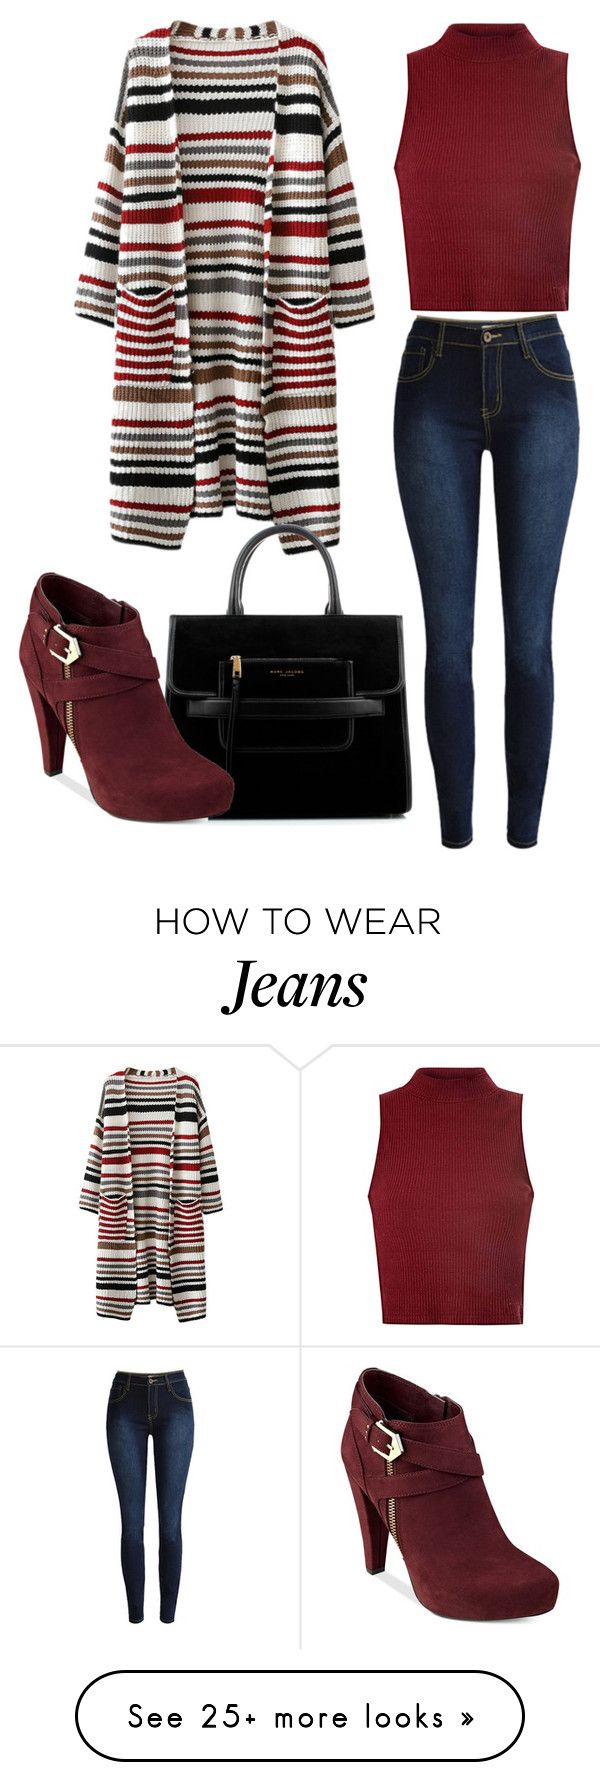 """Jeans for Fall"" by nsta on Polyvore featuring Glamorous, Marc Jacobs and G by Guess"